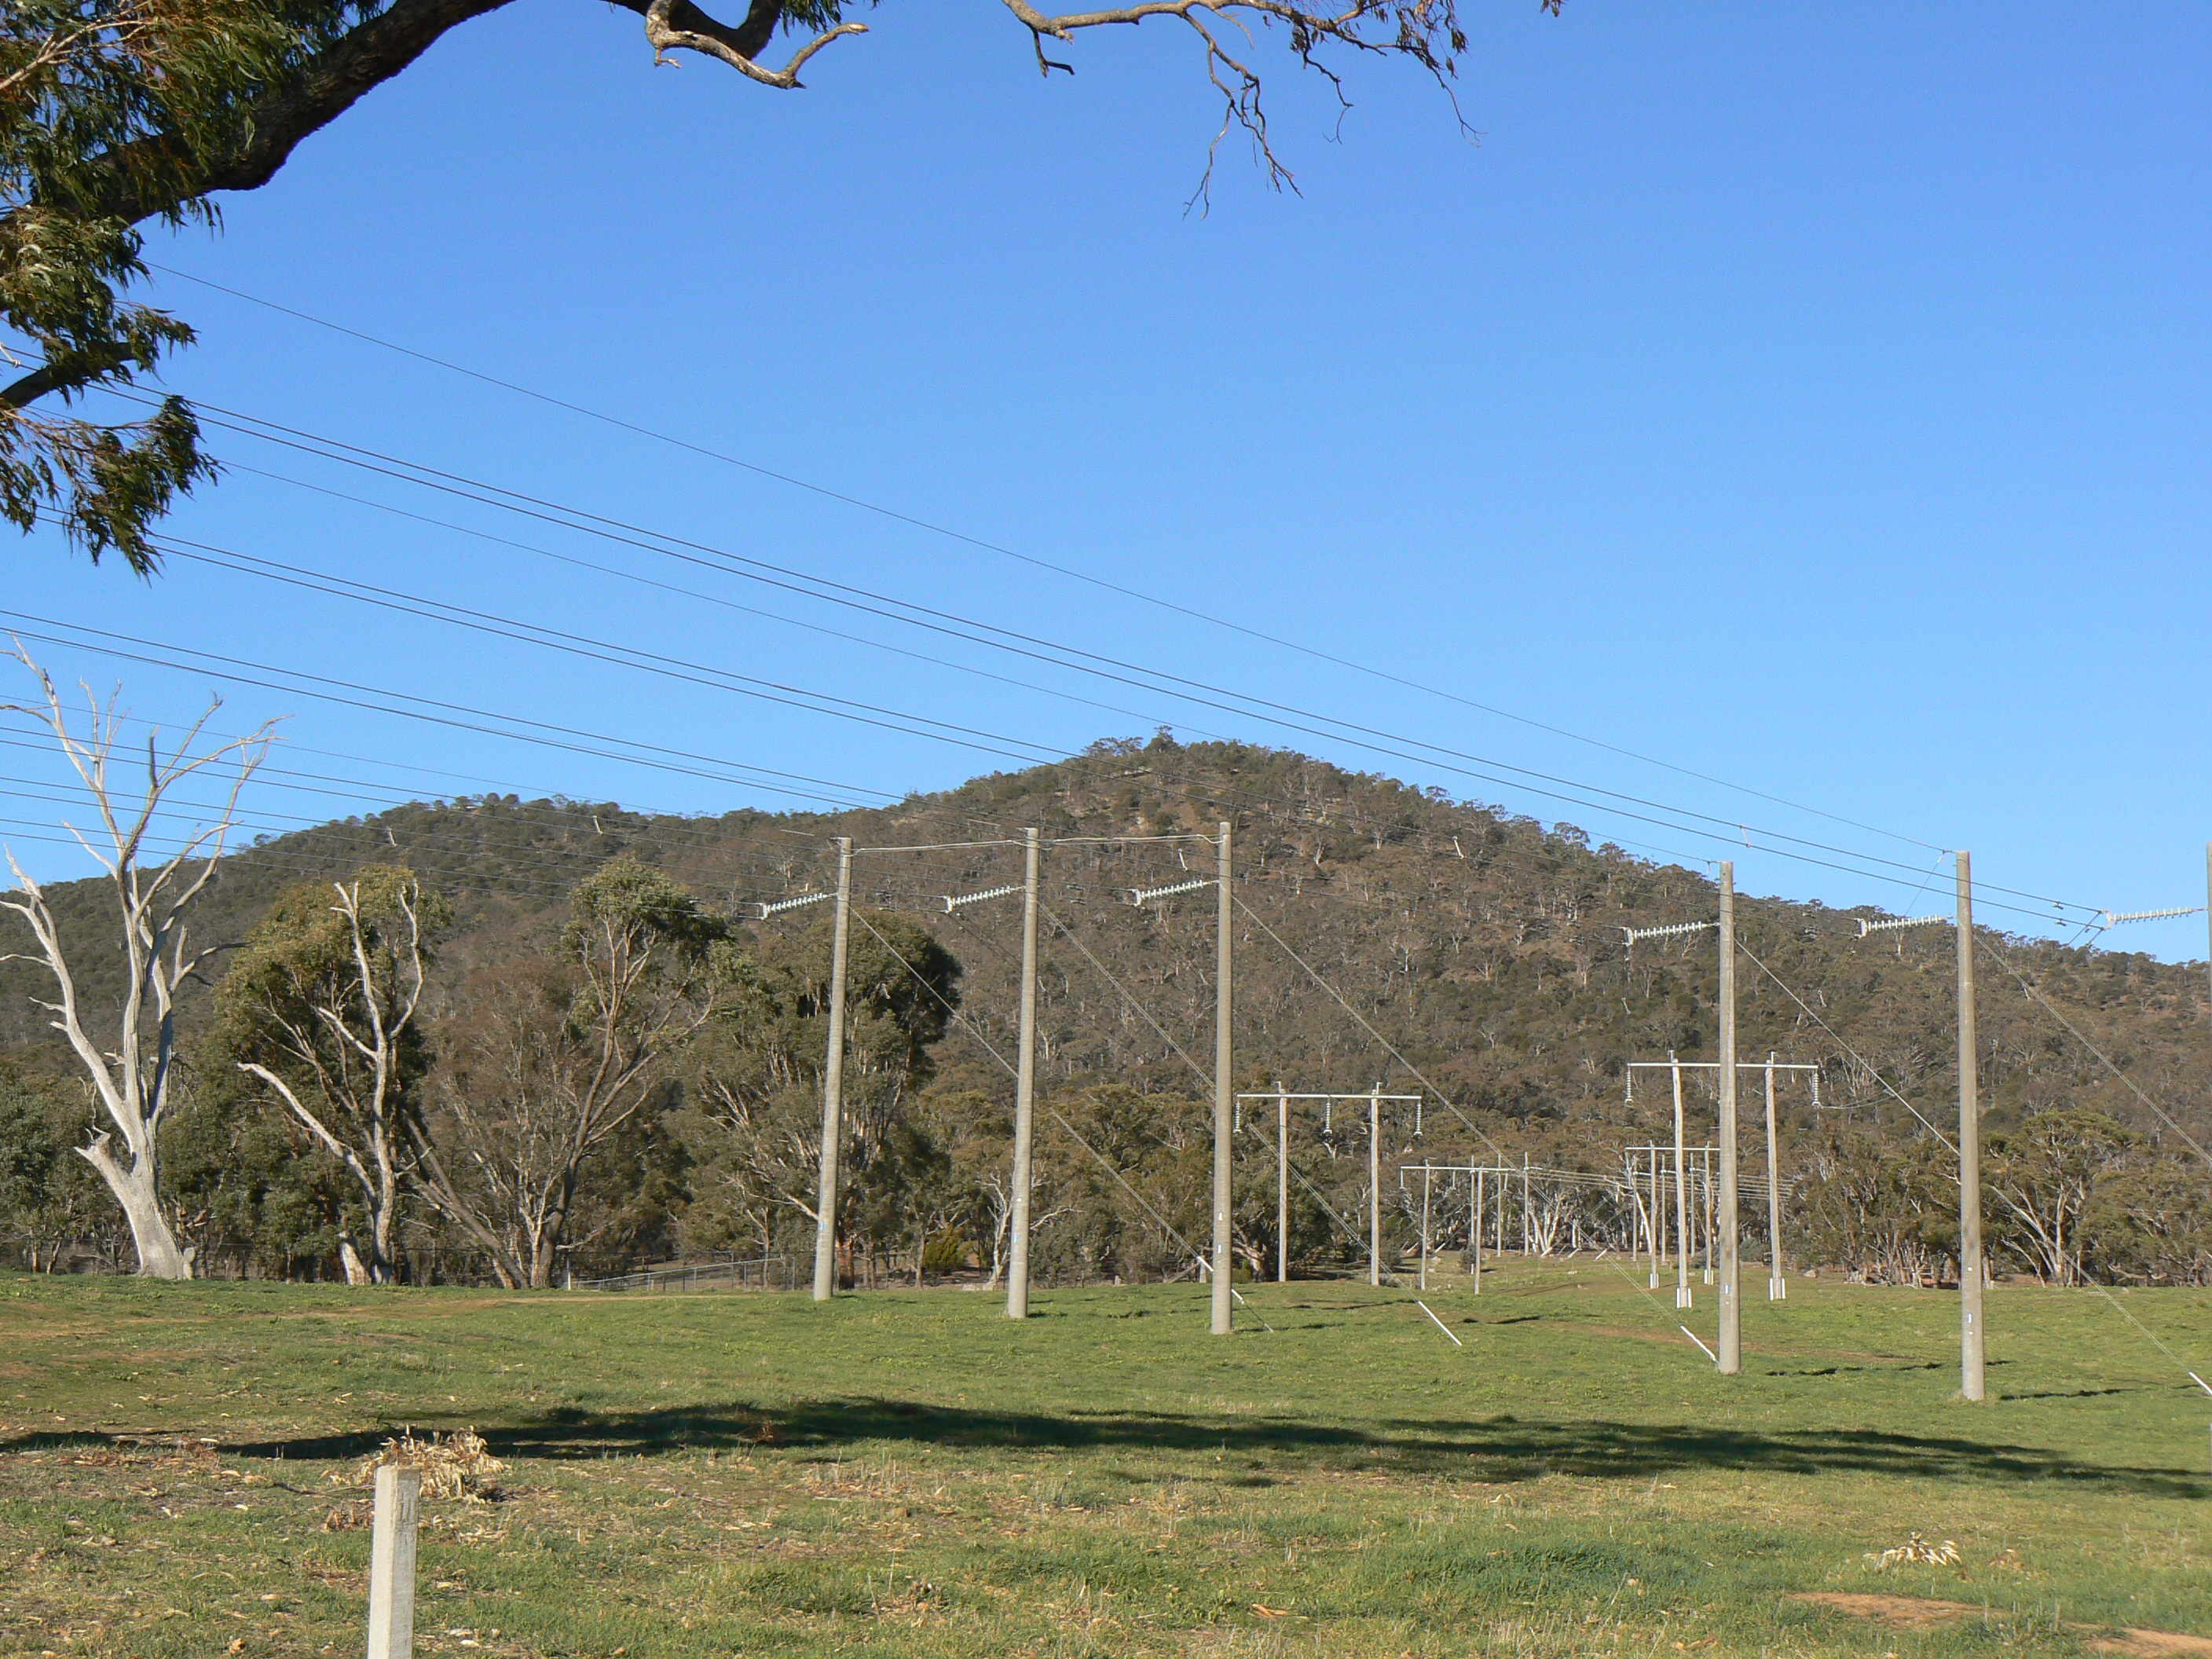 Mount Majura as seen from the Antill Street entrance